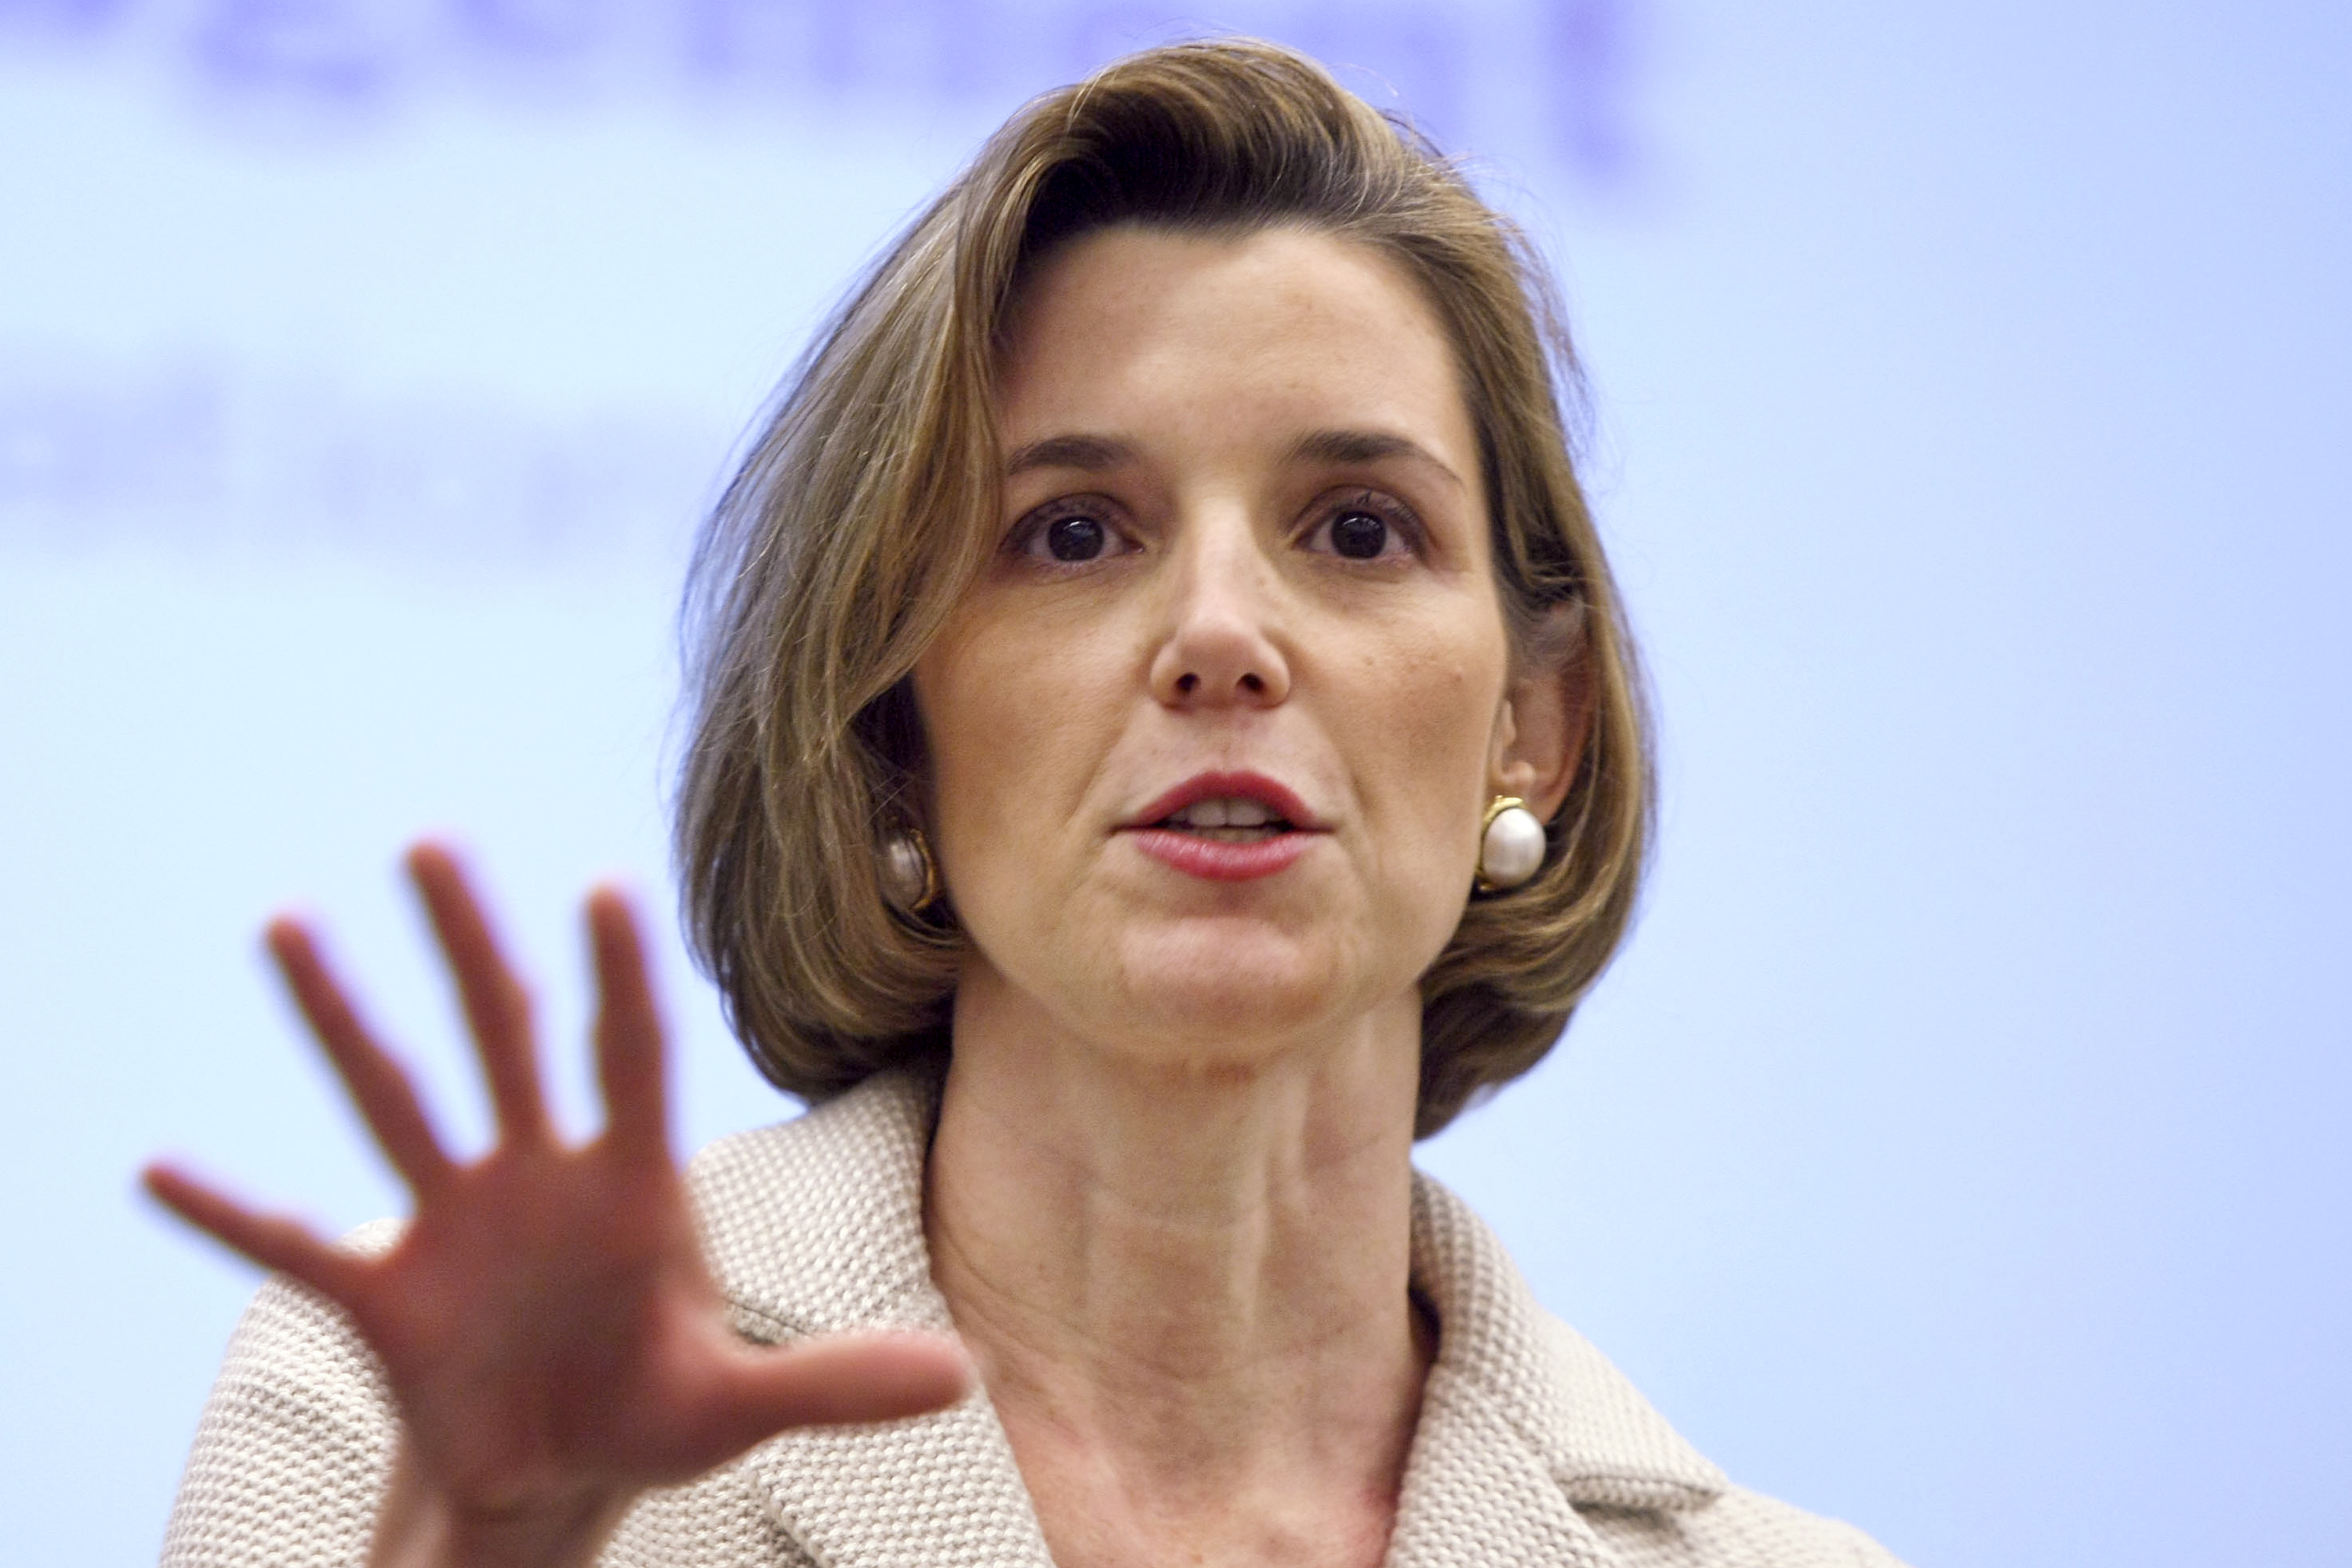 Sallie Krawcheck Of BOA Merrill Lynch